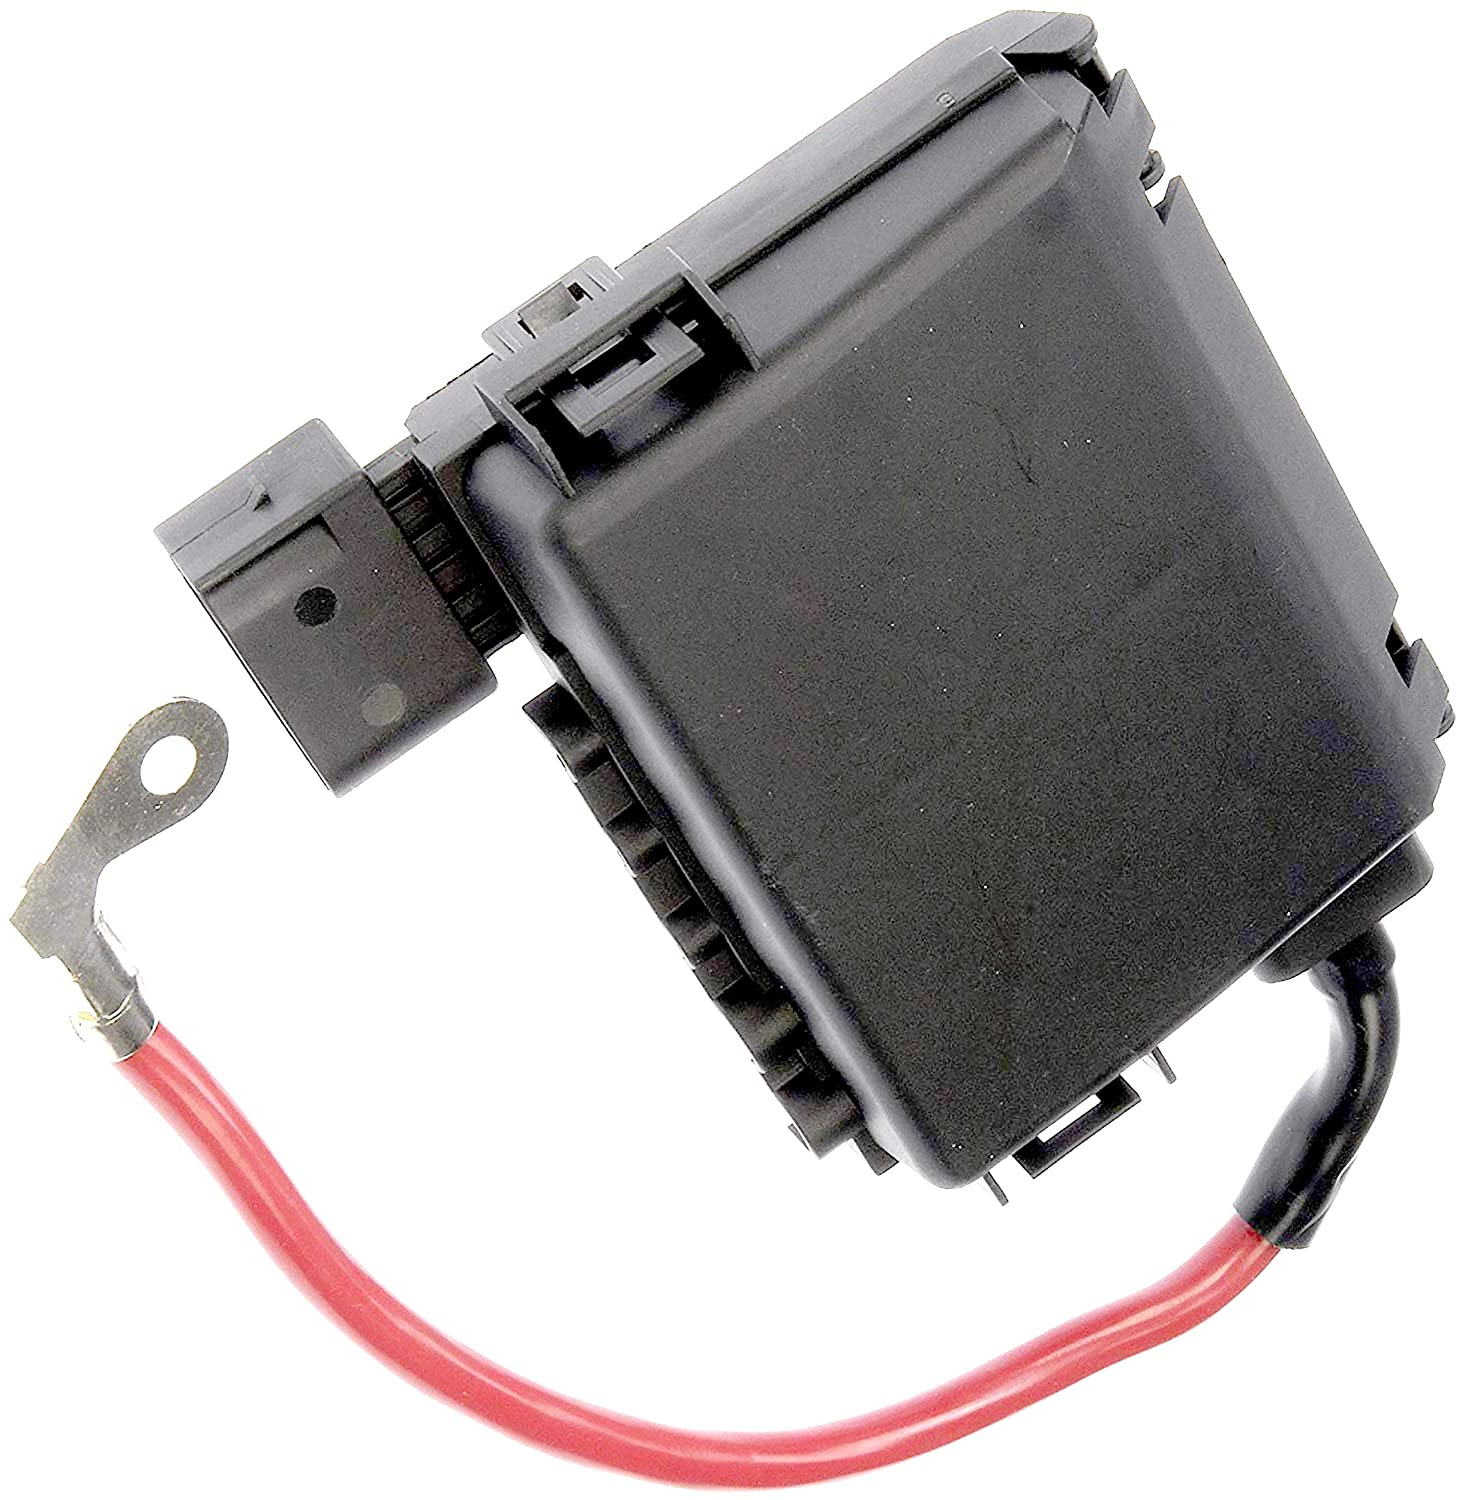 Apdty 035792 Fuse Box Assembly Battery Mounted With New 2003 Ford Expedition Price Fuses Fusible Links Fits 1998 Vw Beetle Models Up To Vin 1c3440500